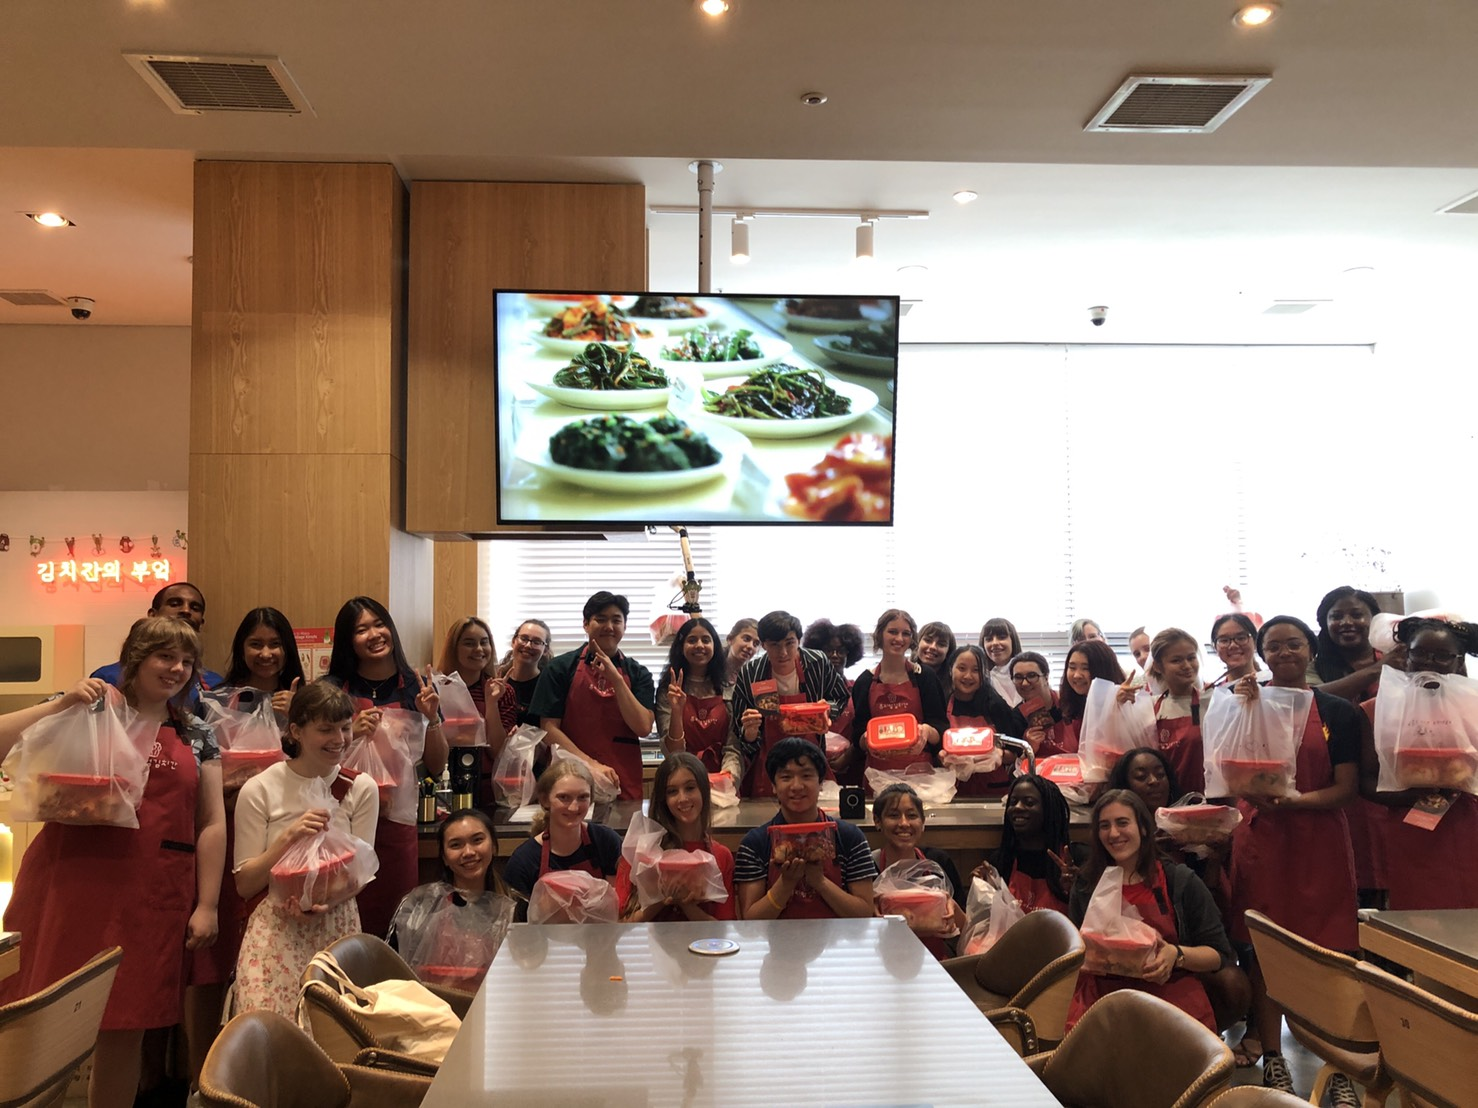 Group picture of students holding their finished containers of Kimchi.